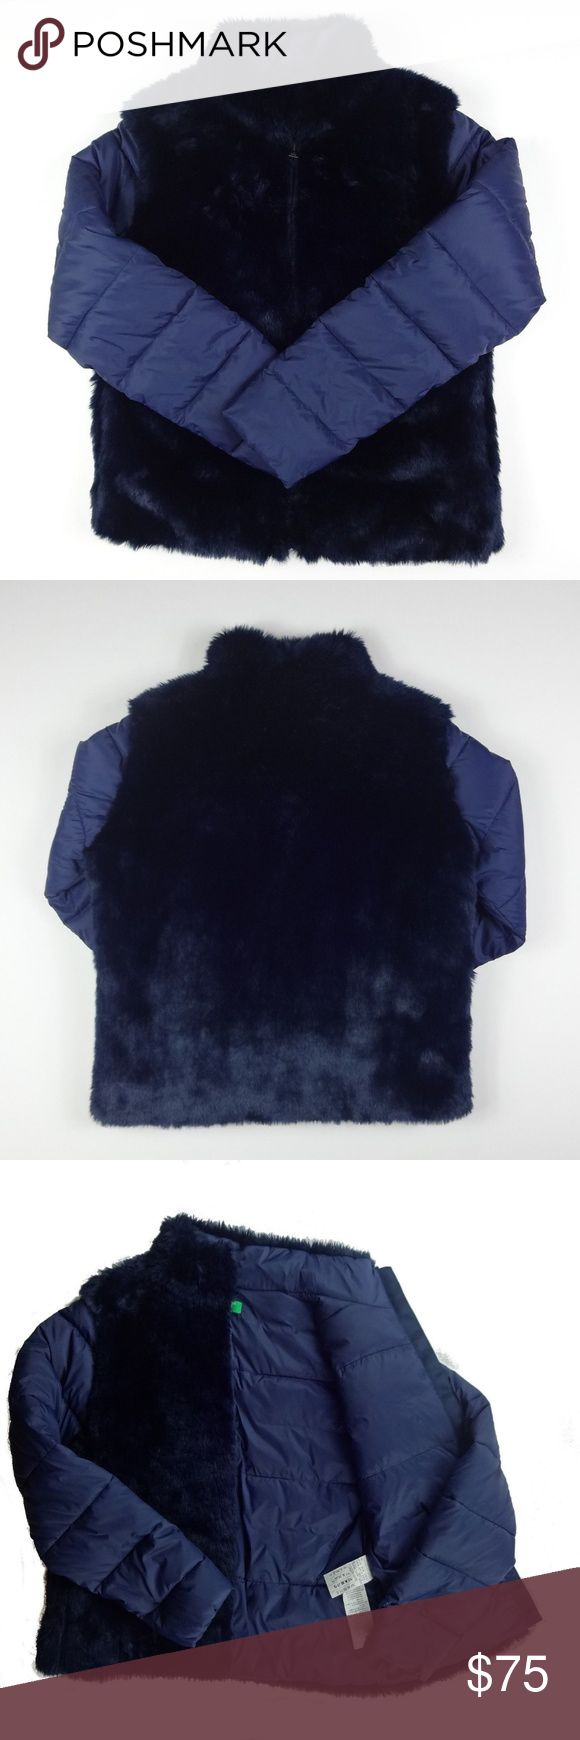 United Colors Benetton Size 8 Blue Faux Fur Jacket United Colors of Benetton Womens Size 8 Dark Blue Faux Fur Puffer Jacket EUC  Bust: 38 inches Waist: 40 inches Length from top of shoulder: 24 inches Sleeve length from shoulder seam: 24 inches  Fabric content of shell: 85% acrylic, 15% polyester Fabric content of : 100% nylon United Colors Of Benetton Jackets & Coats Puffers